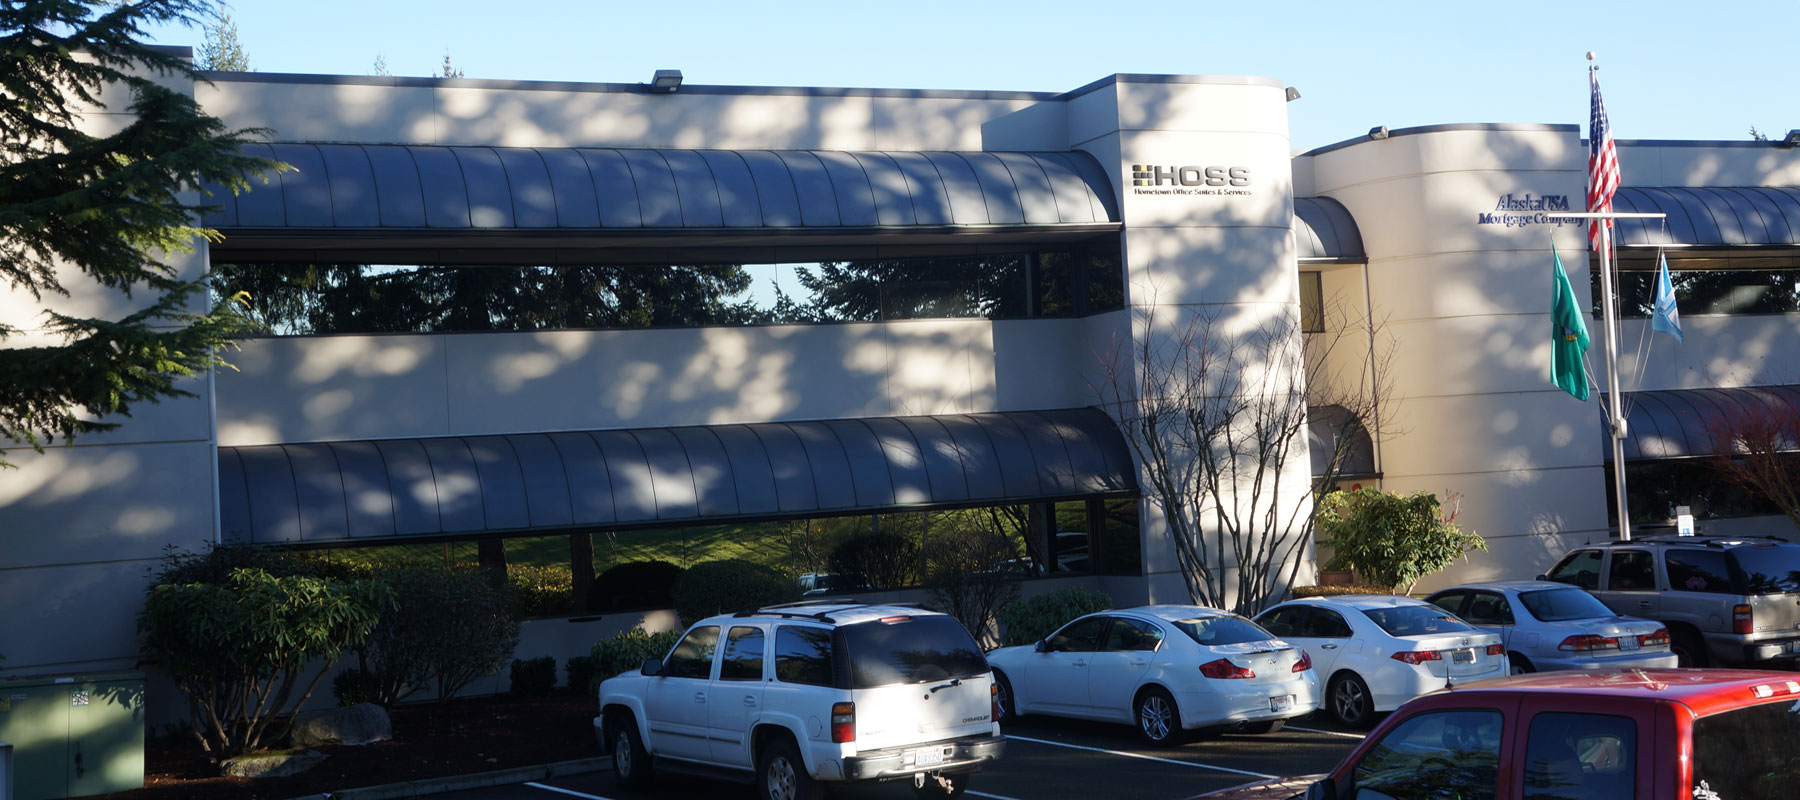 Hometown Office Suites and Services (HOSS) - 33530 1st Way S - Federal Way